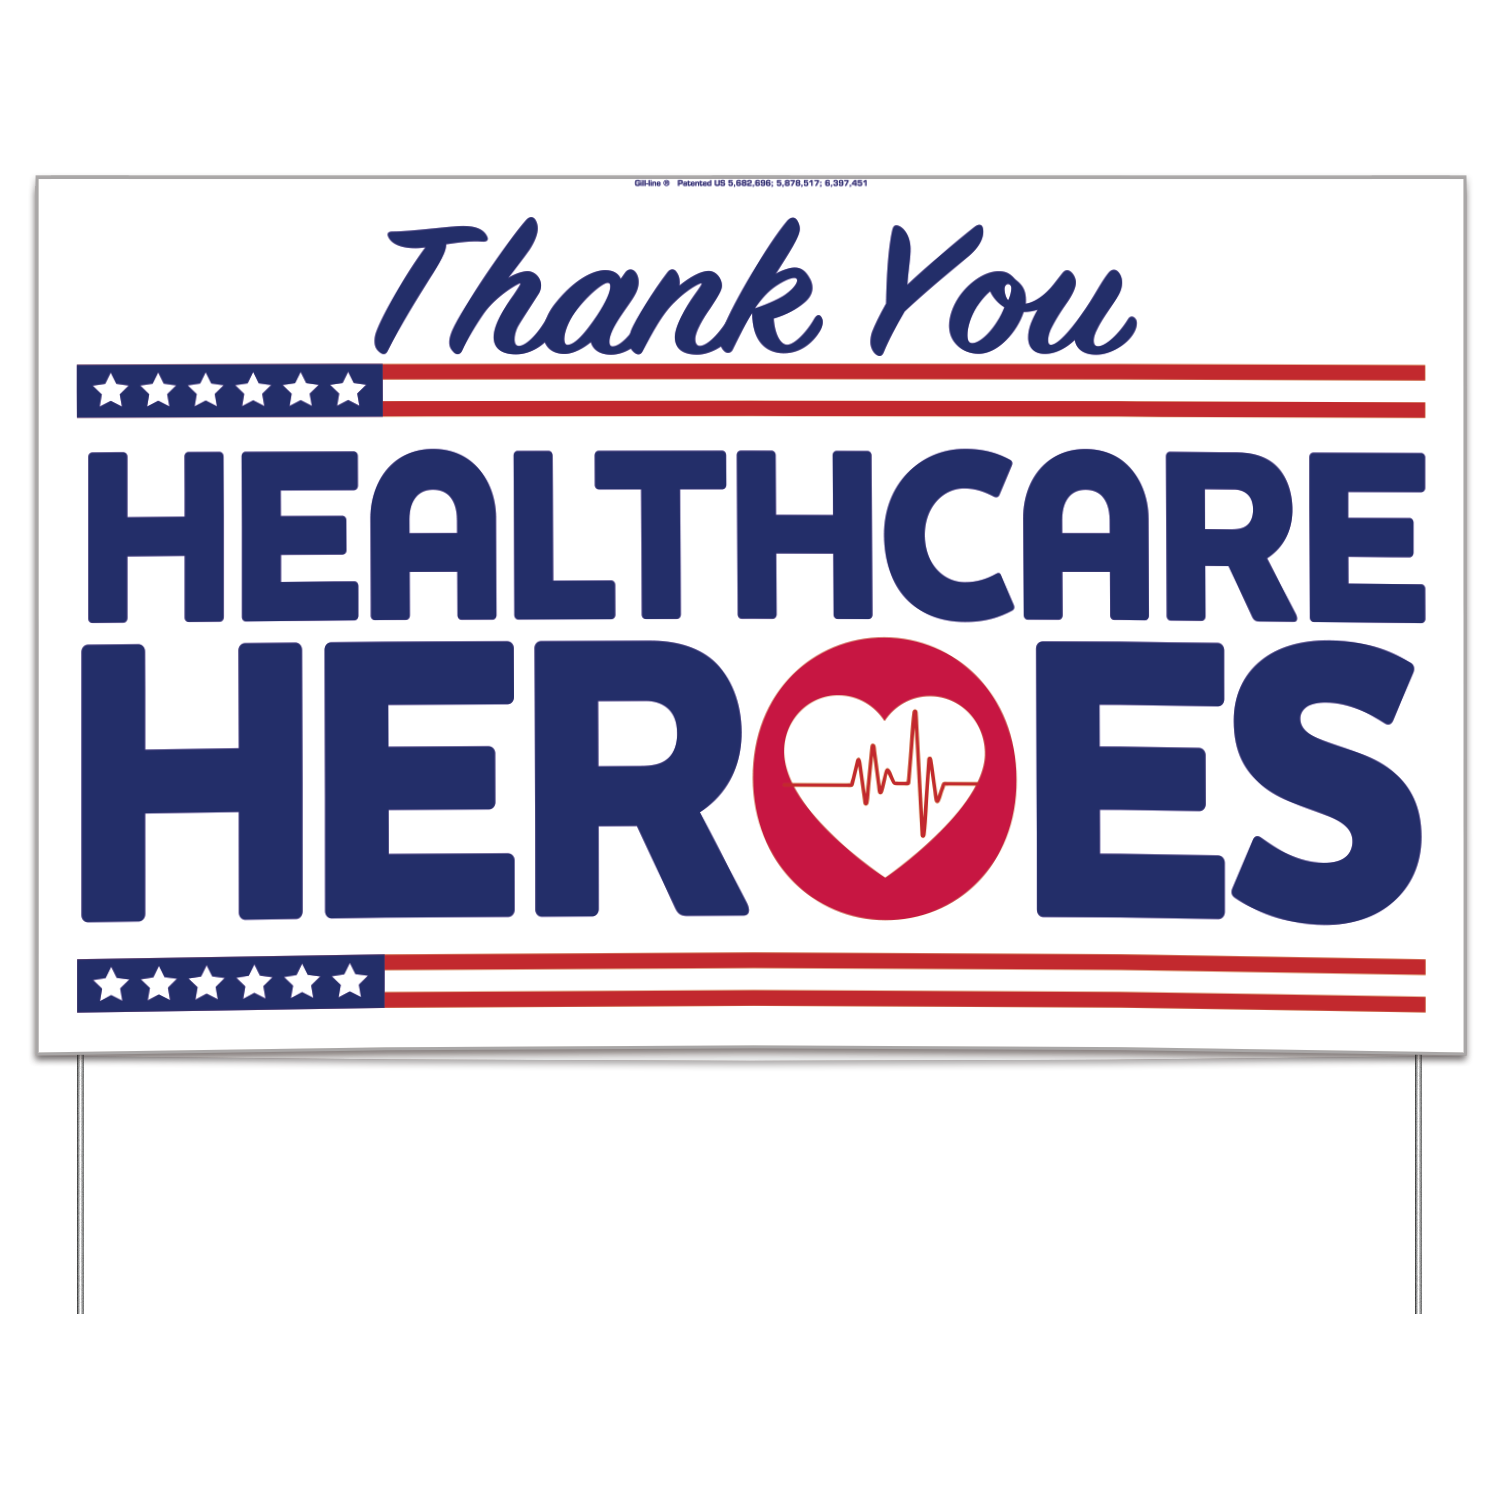 https://www.sswprinting.com/images/products_gallery_images/594101_thank-you-Healthcare-Heroes_hi-res.png